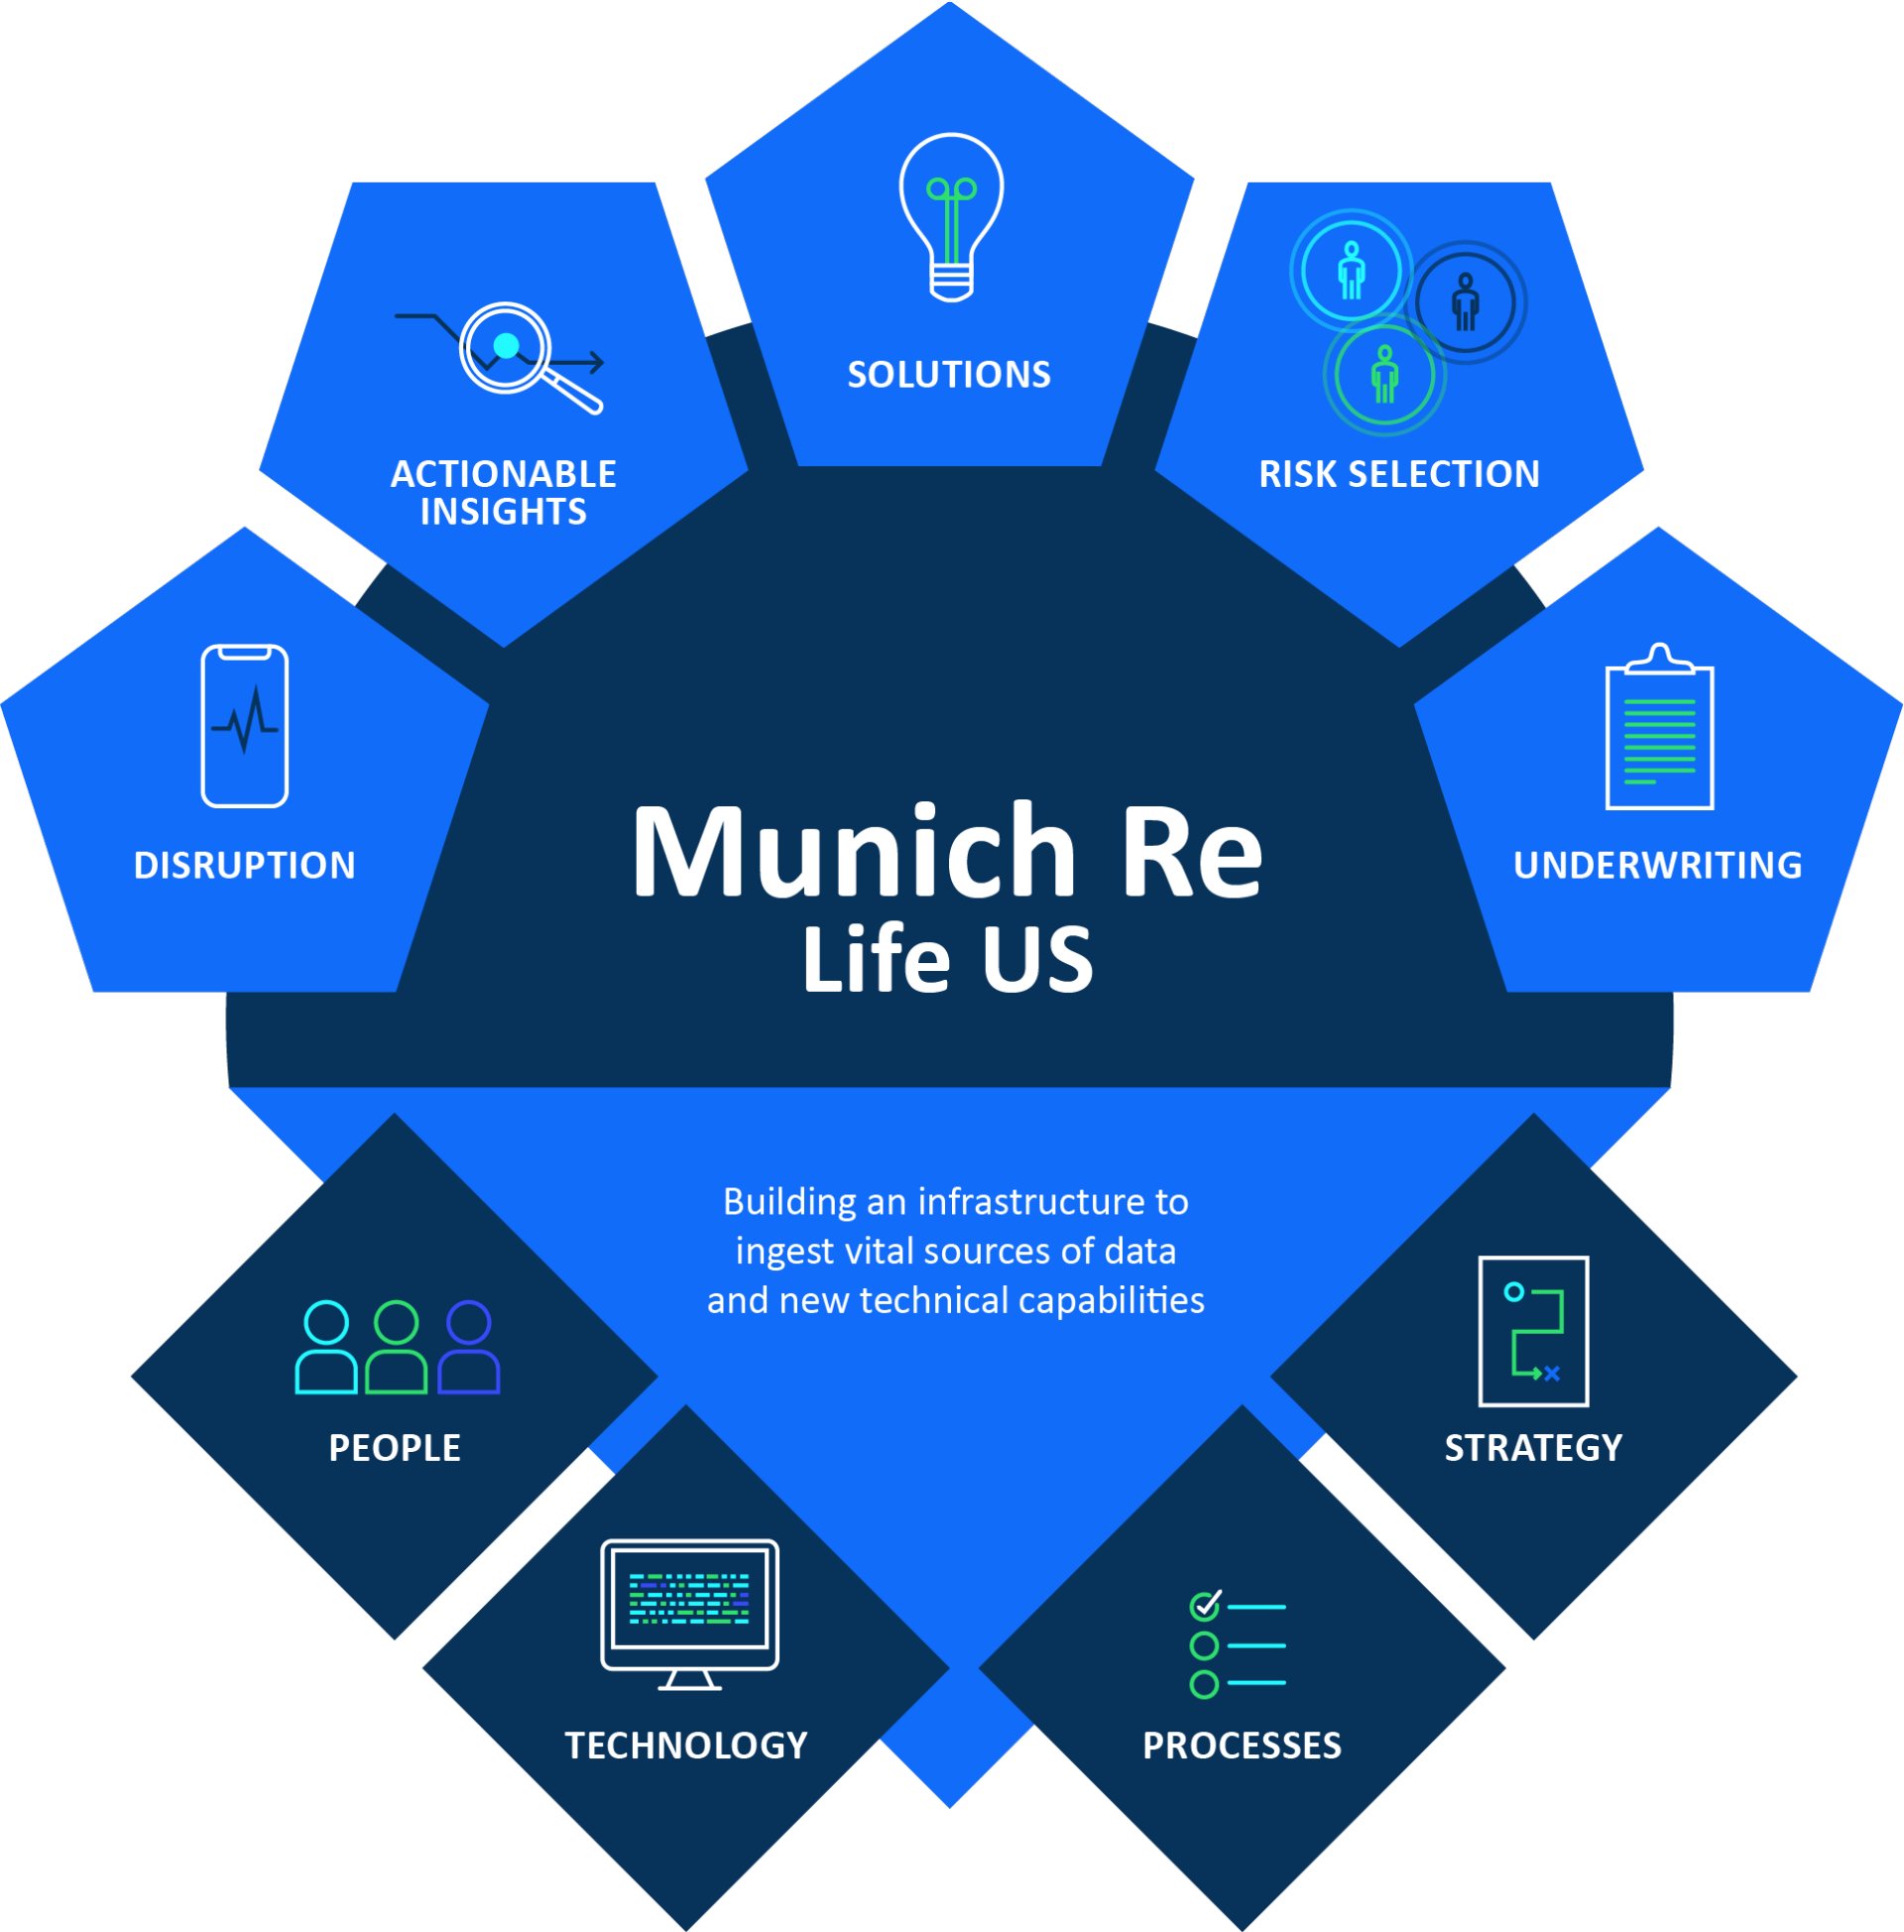 Munich Re Life Us info graphic showing company solutions